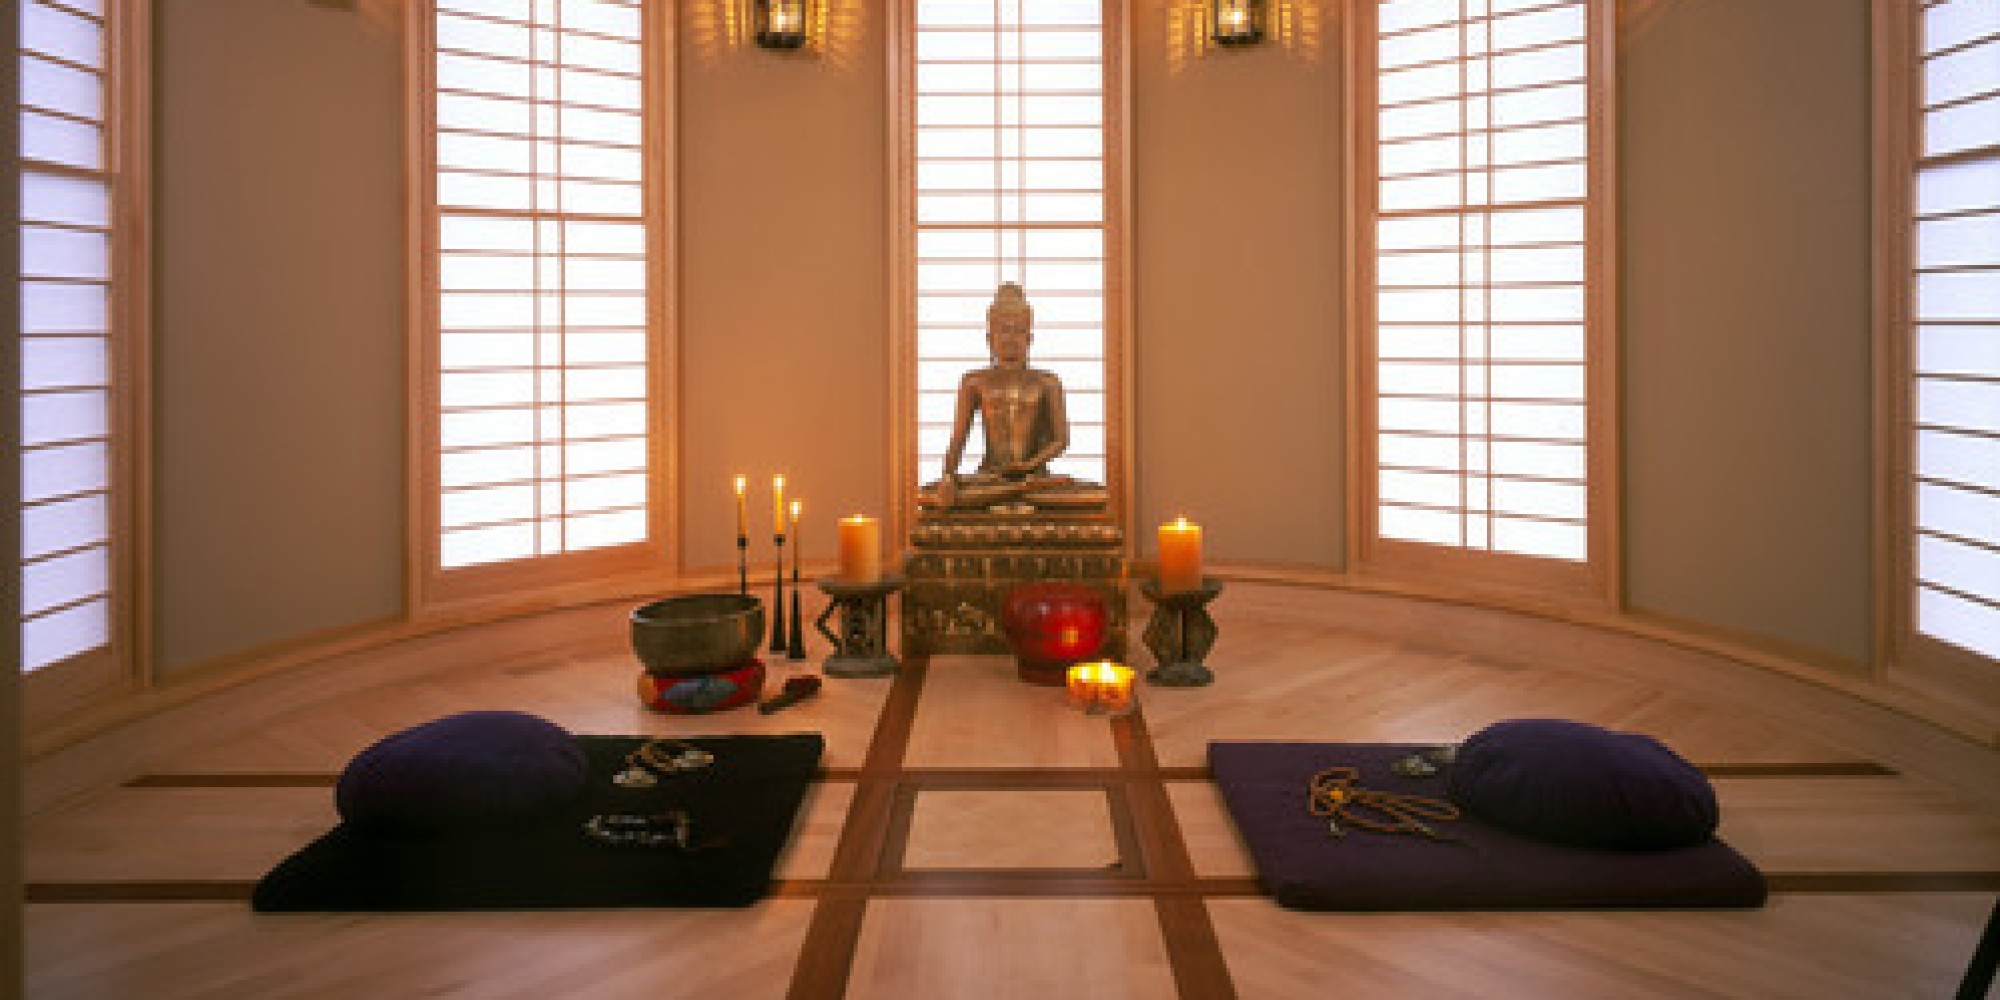 Meditation Decor Entrancing How To Create A Meditation Room  Kheops International Design Ideas